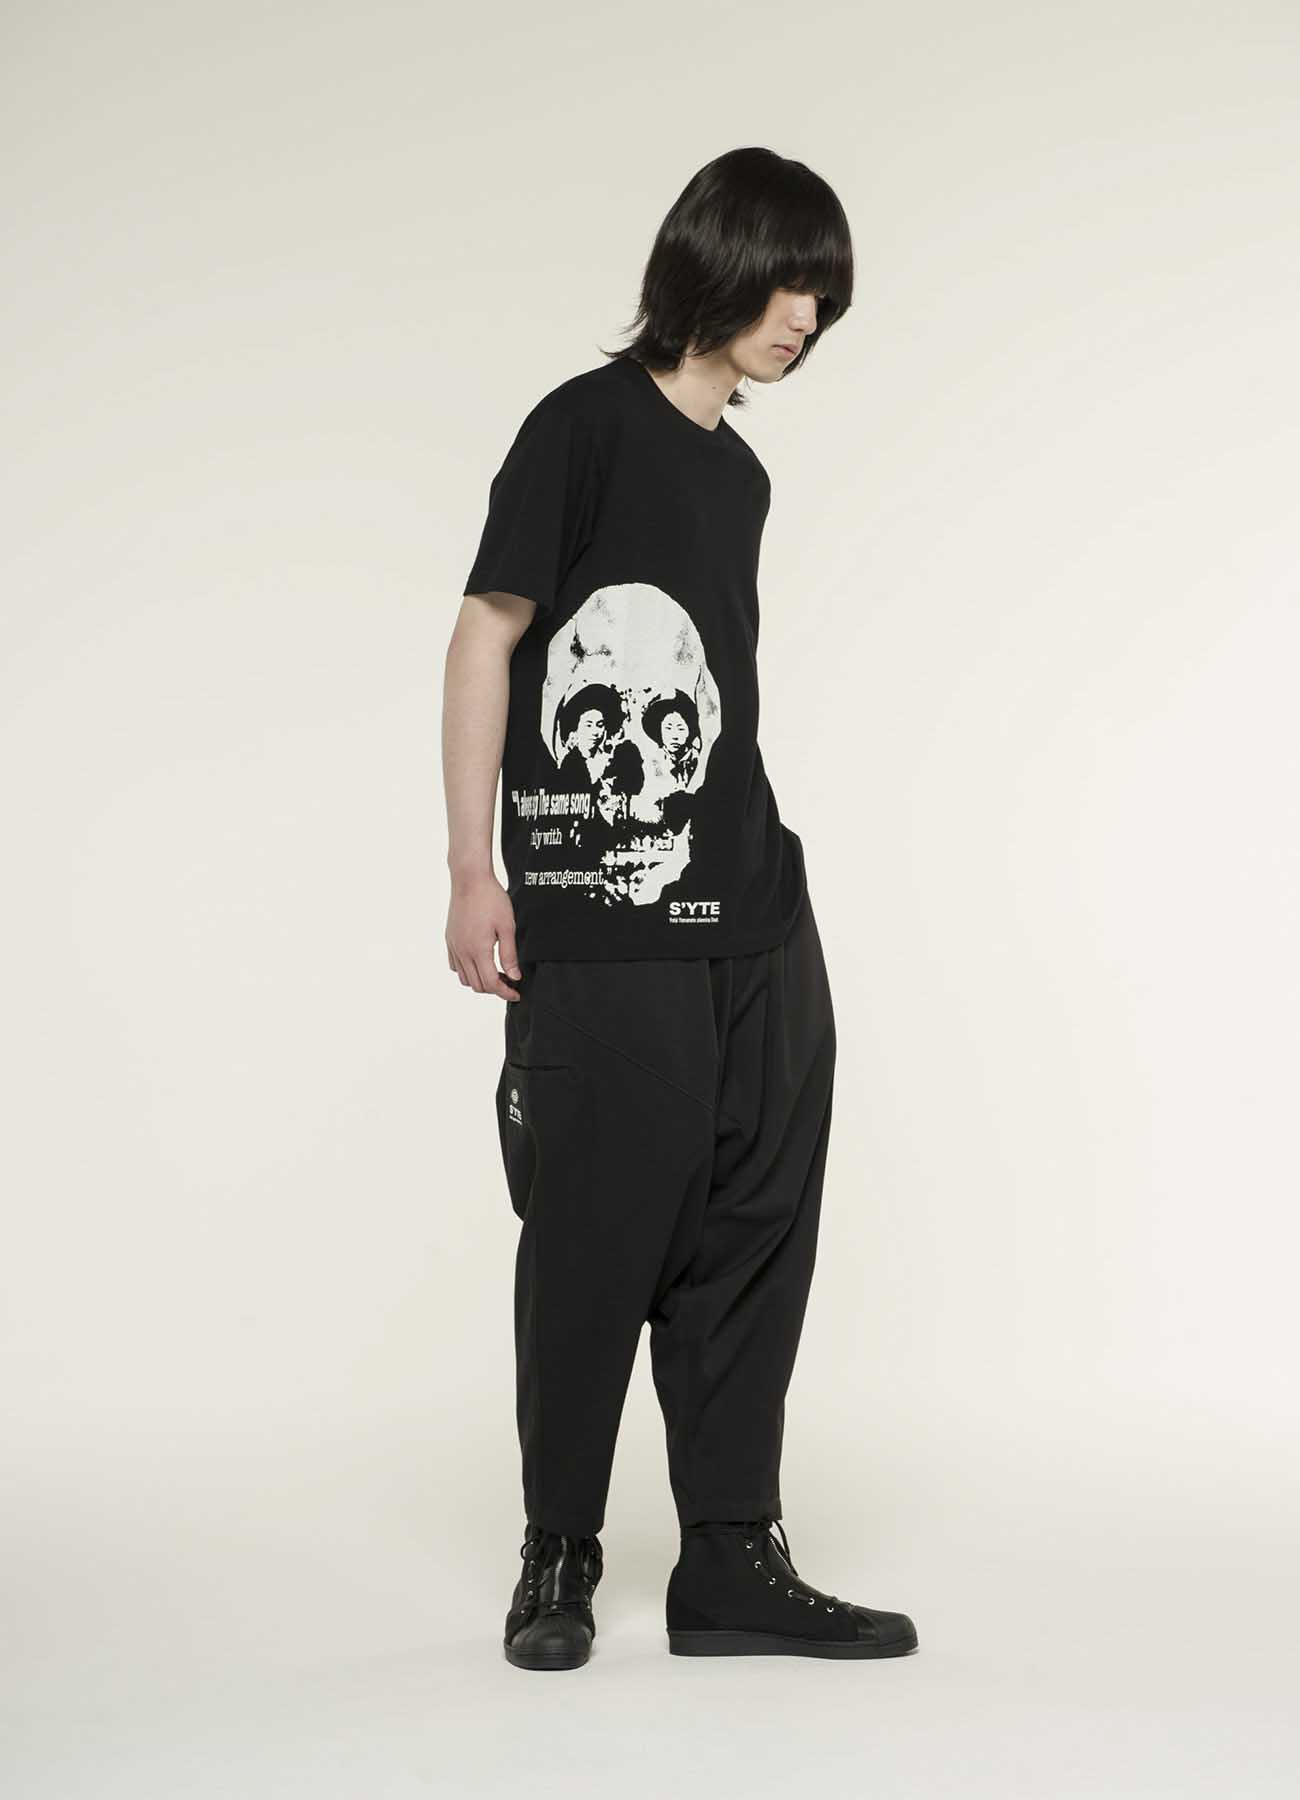 20/CottonJersey Skull of the Eye T-shirt